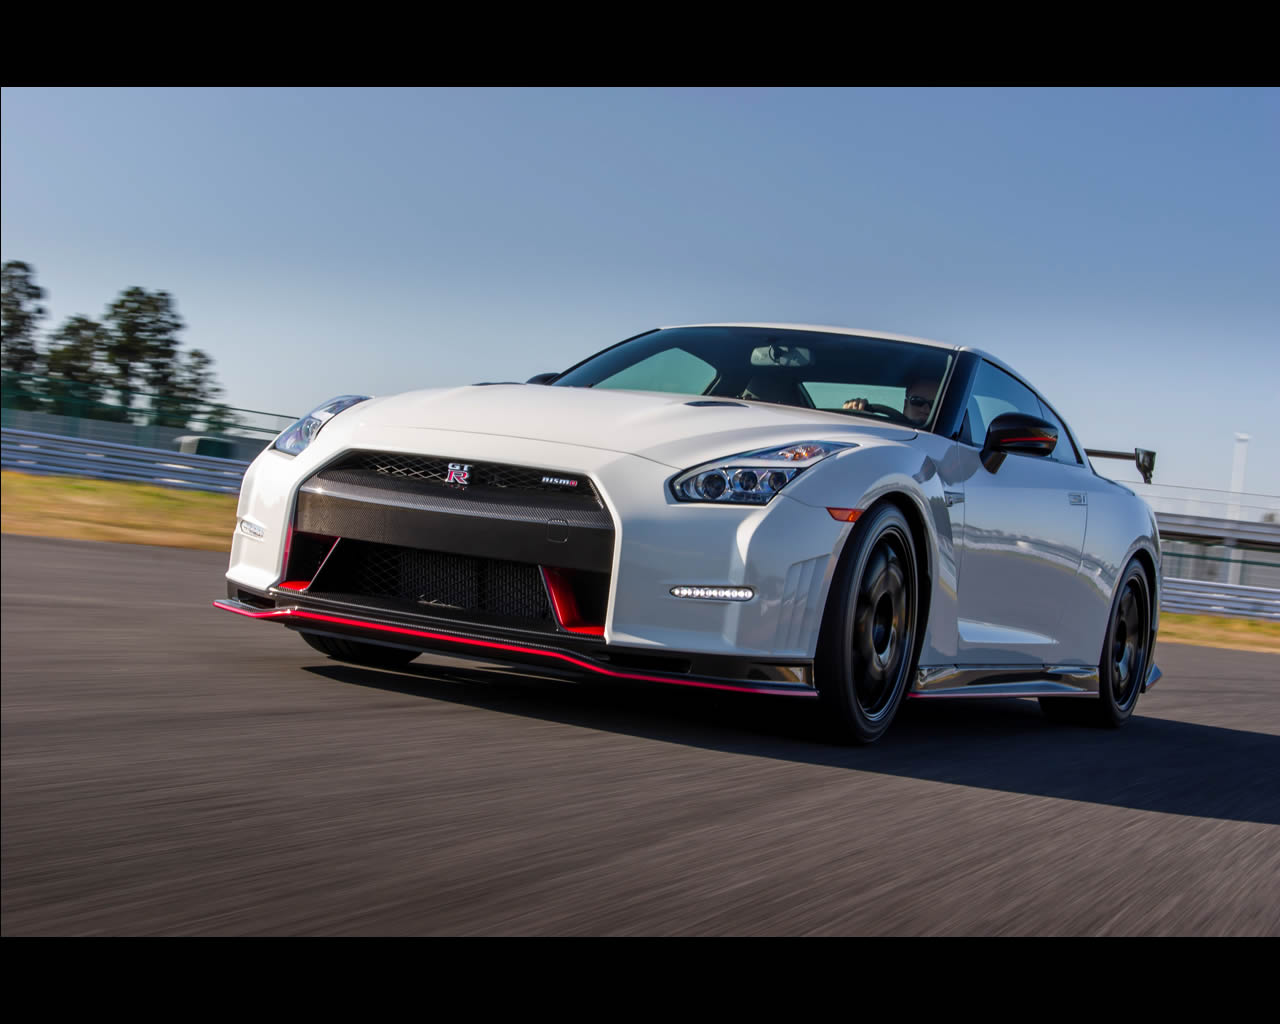 Wallpapers Nissan GT R Nismo 2014 click on image to enlarge 1280x1024